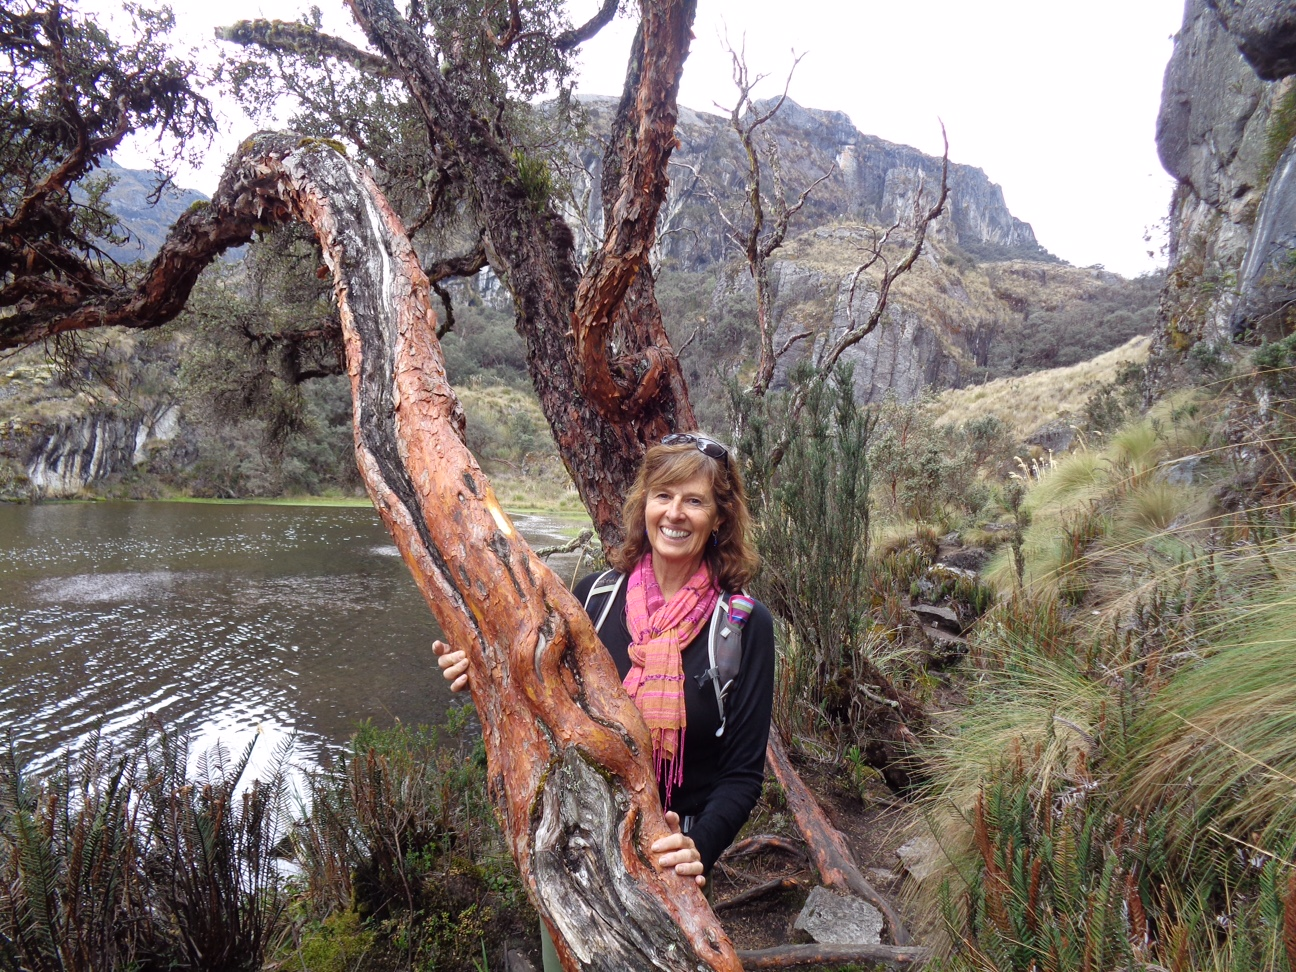 """""""I have a personal and professional relationship with the South Fork Salmon river watershed, which I am grateful to have had for the last 25 years. I am extremely concerned that some of the unique qualities of the South Fork are threatened and may be destroyed by the current proposal to reopen mining in the Stibnite area. The connectivity of ecosystems needs intact habitats for many species, aquatic and terrestrial. Analysis of potential impacts from the current mining proposal must identify requirements of all species which could be affected within the immediate area and downstream in the South Fork.""""   -Mary Faurot, McCall, Idaho"""